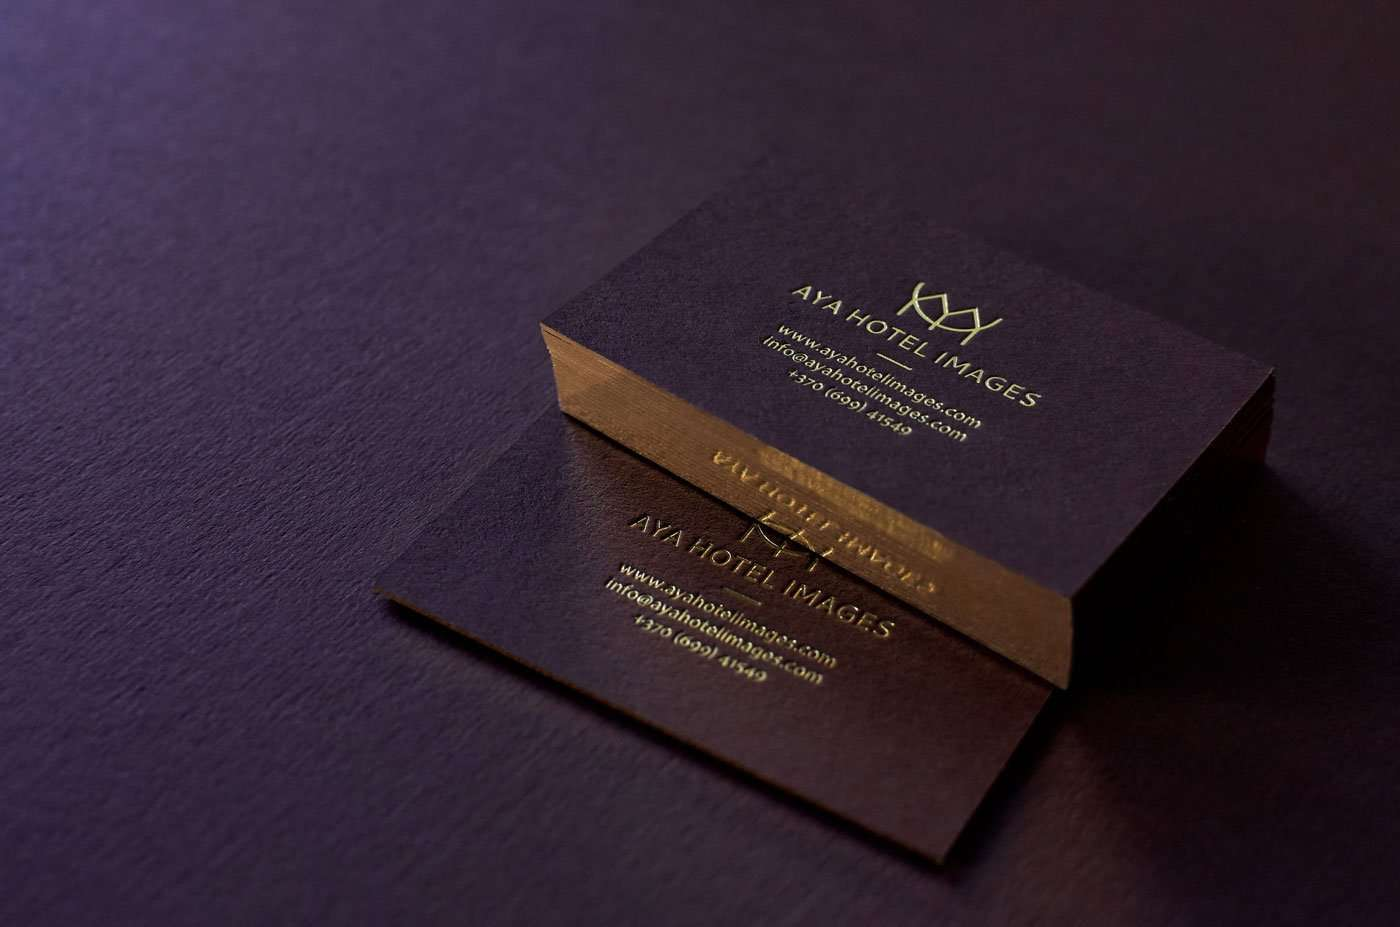 Luxury Business Cards - Free design service | Elegante Press